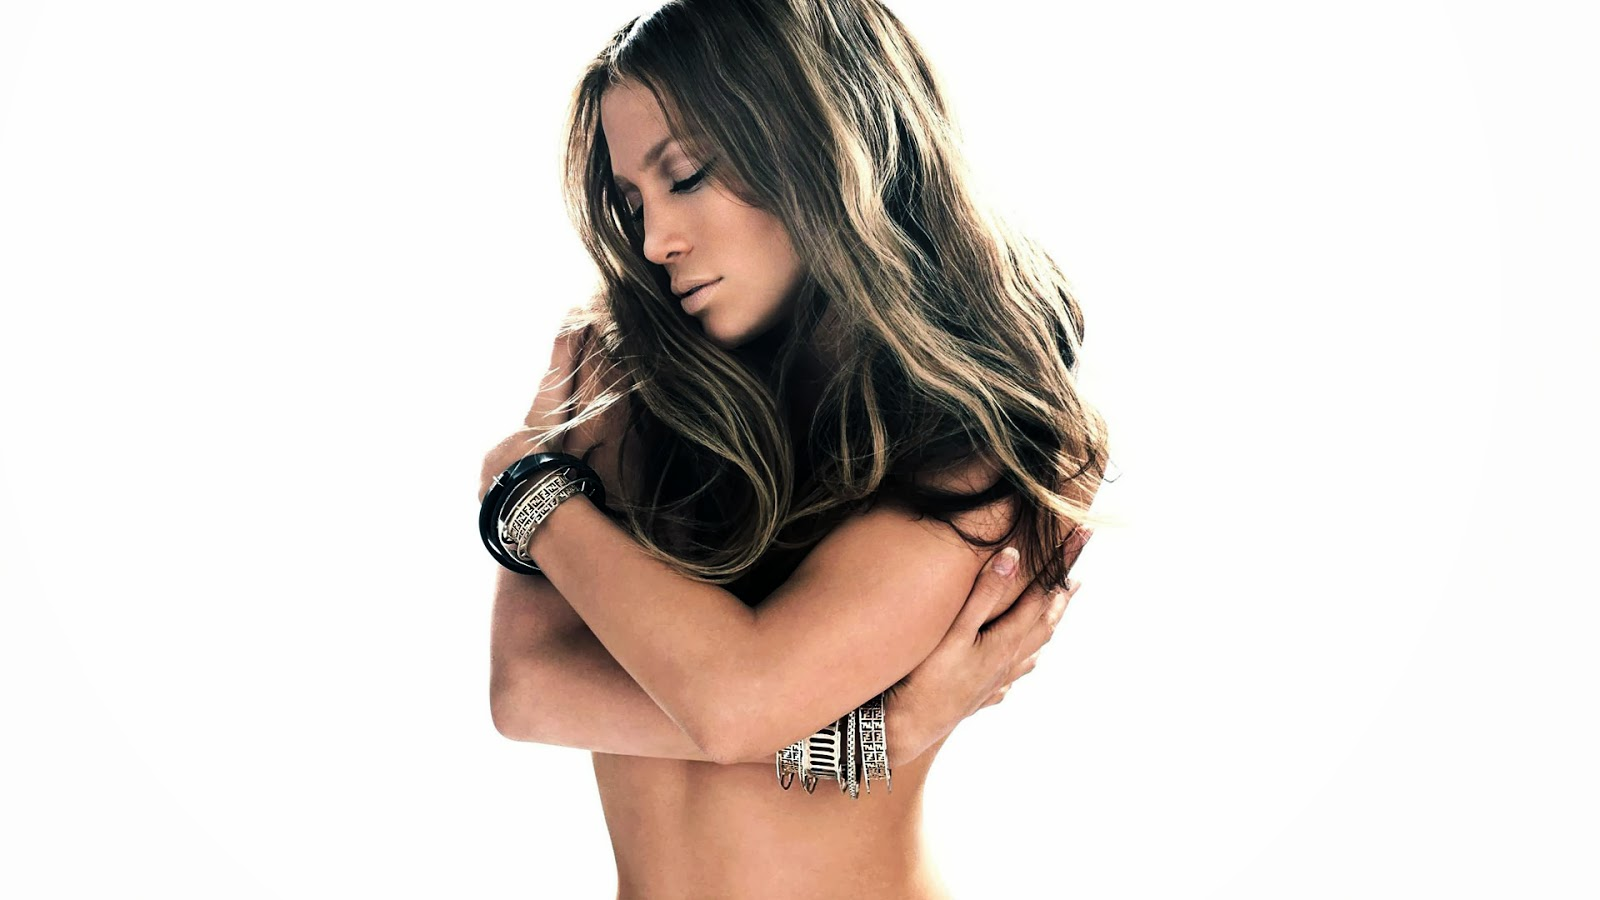 blogspotcom jennifer lopez - photo #46